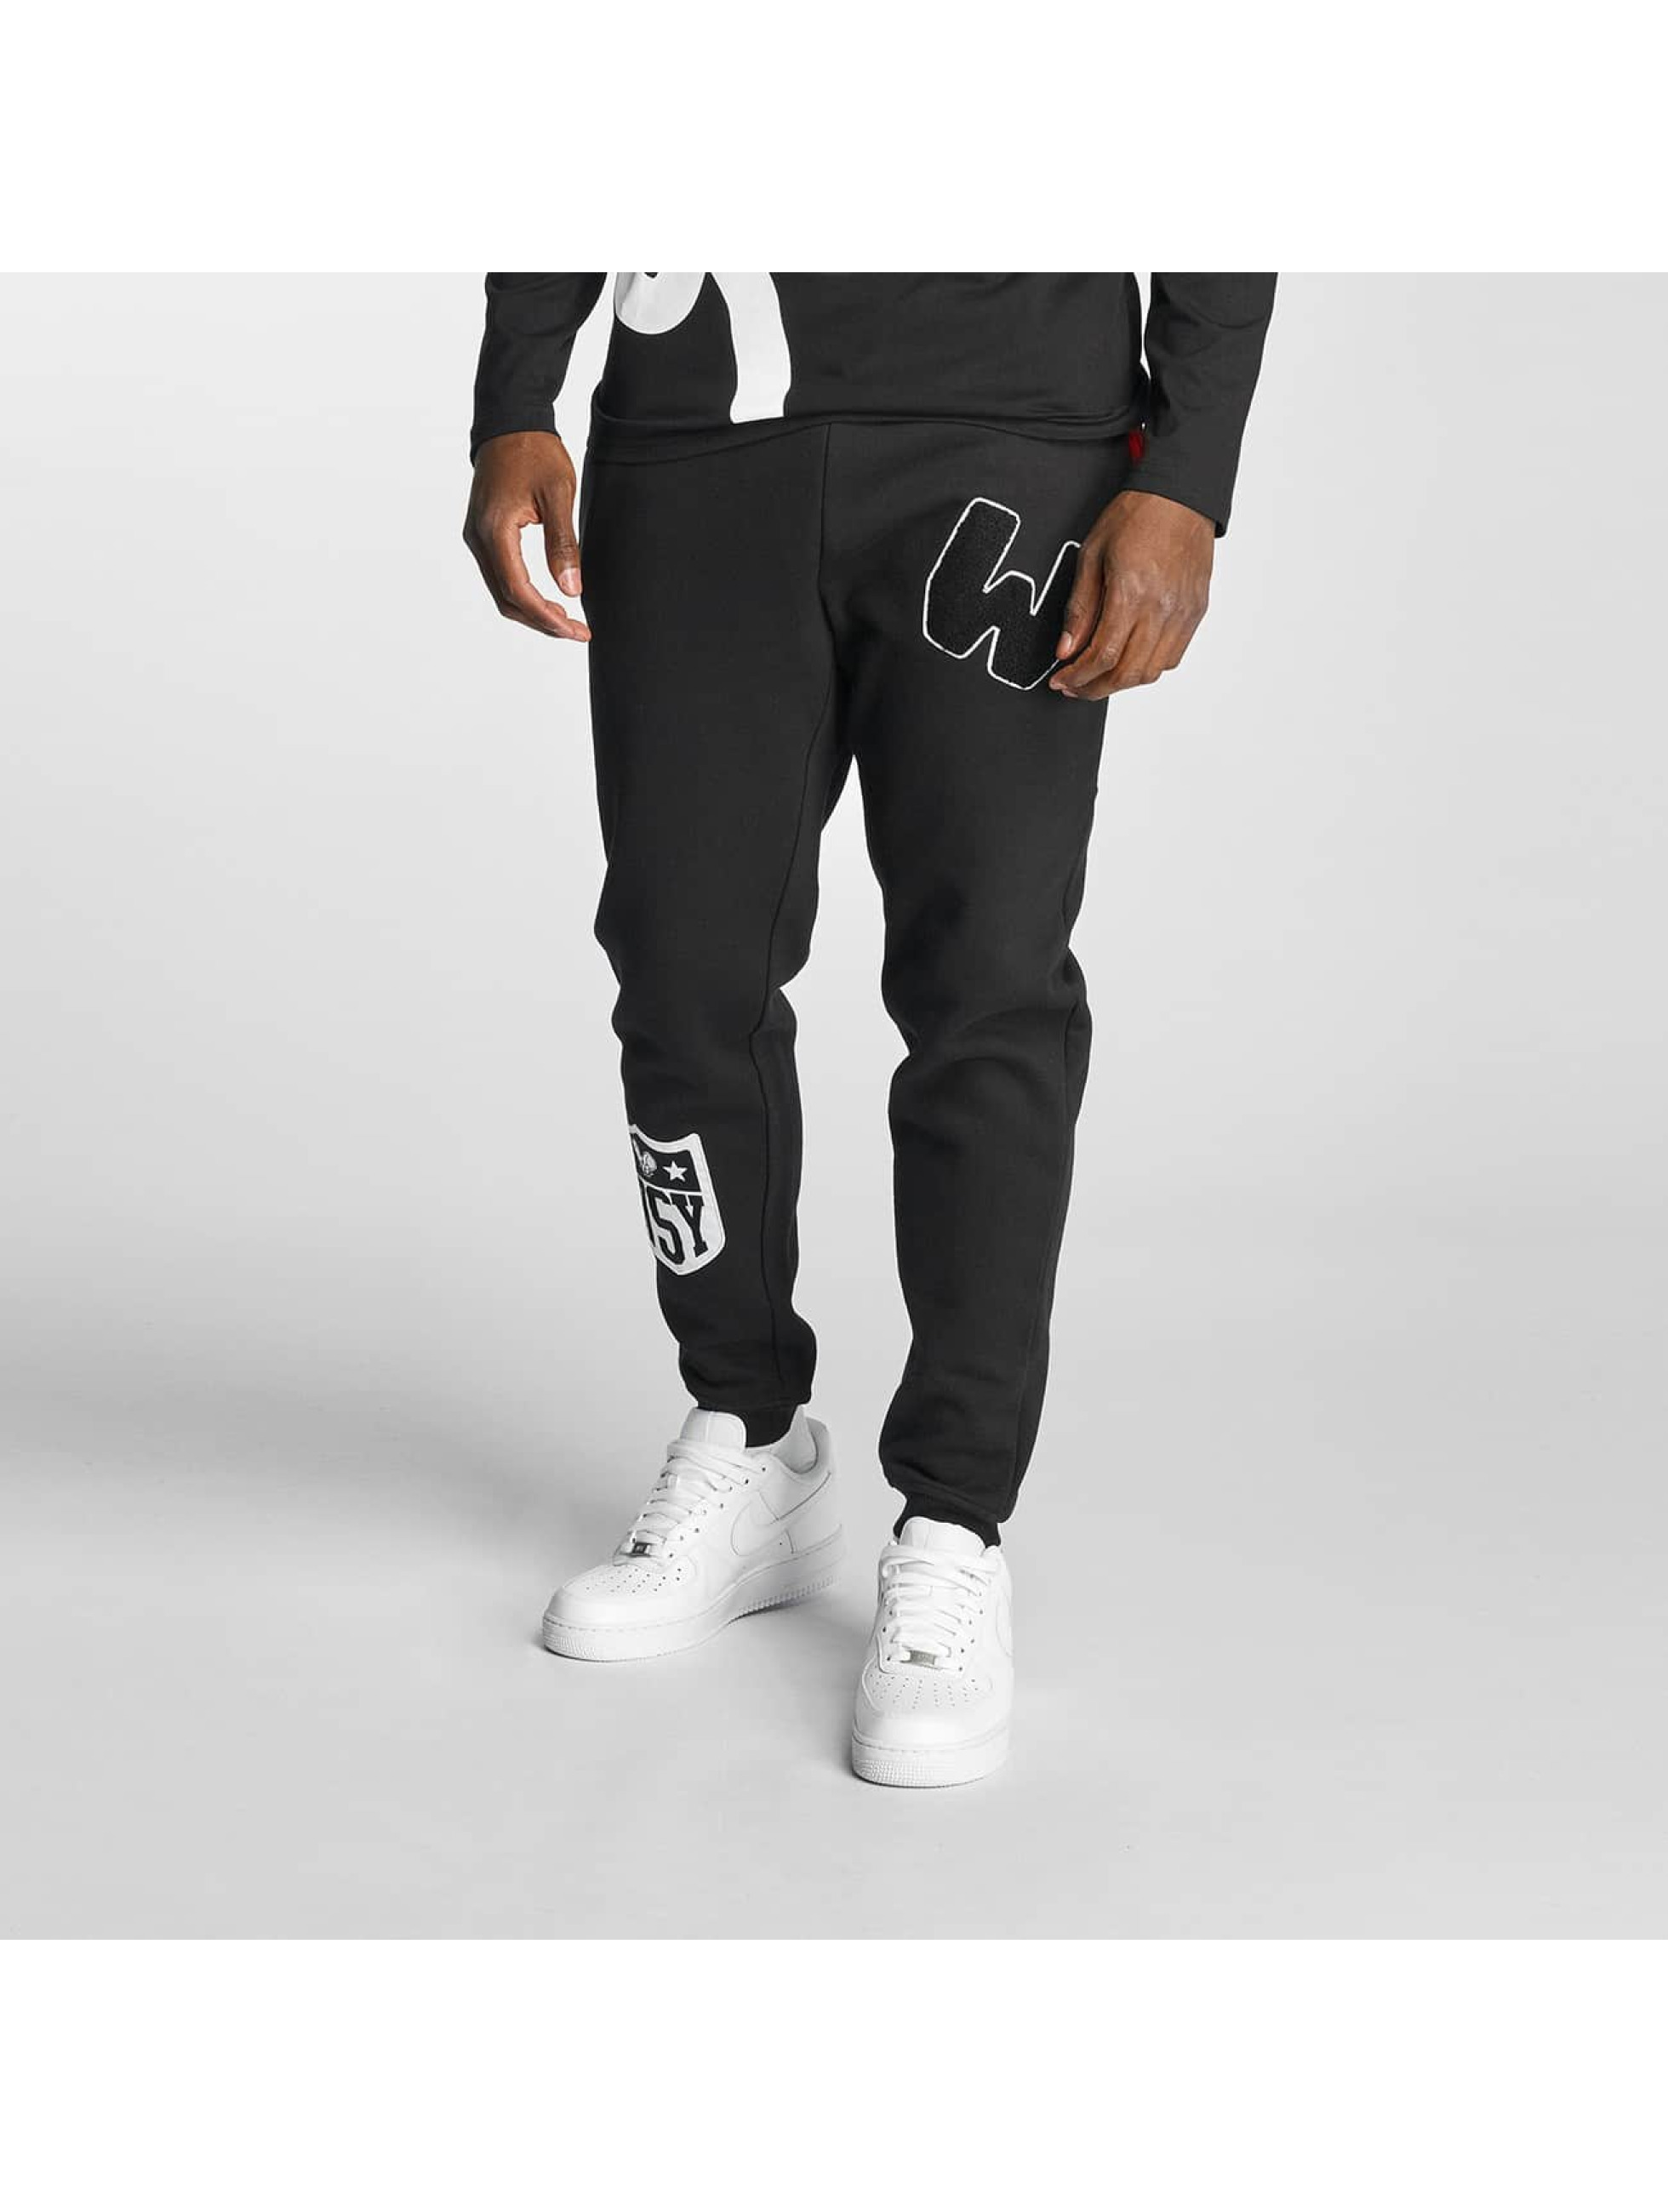 Who Shot Ya? / Sweat Pant Badrabbit in black XL